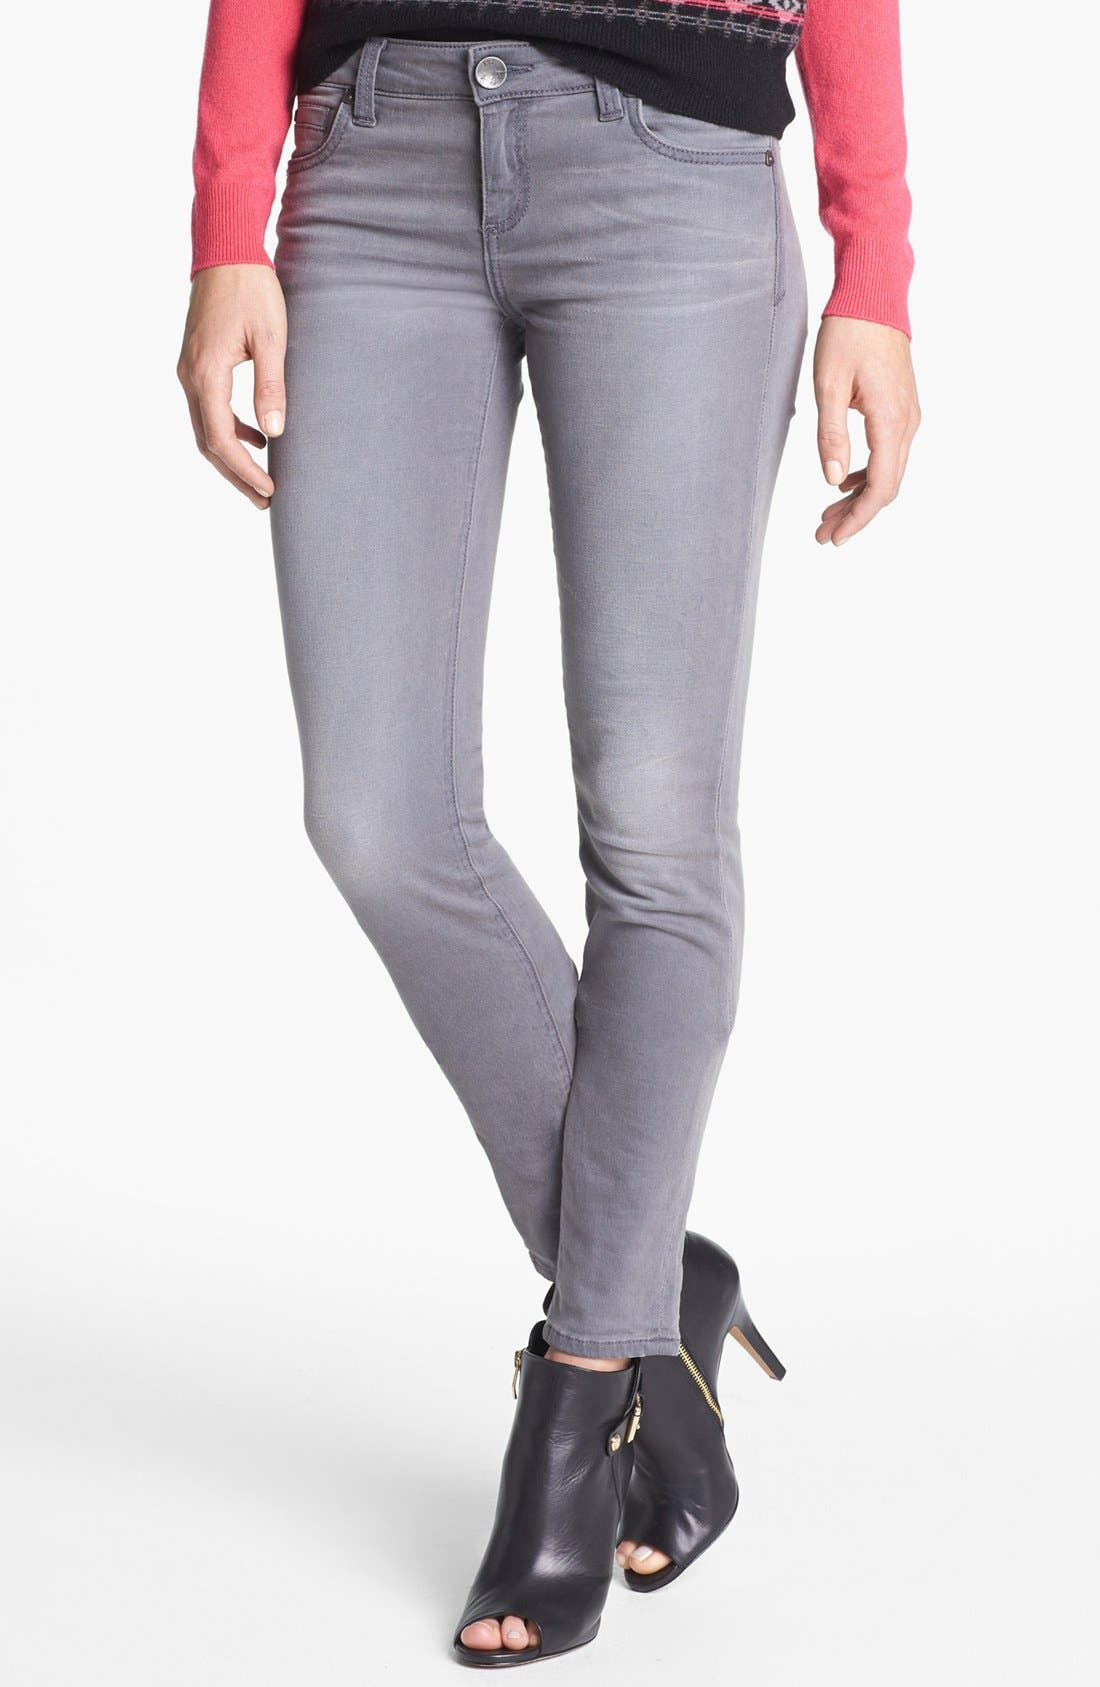 Alternate Image 1 Selected - KUT from the Kloth 'Mia' Skinny Jeans (Grey)